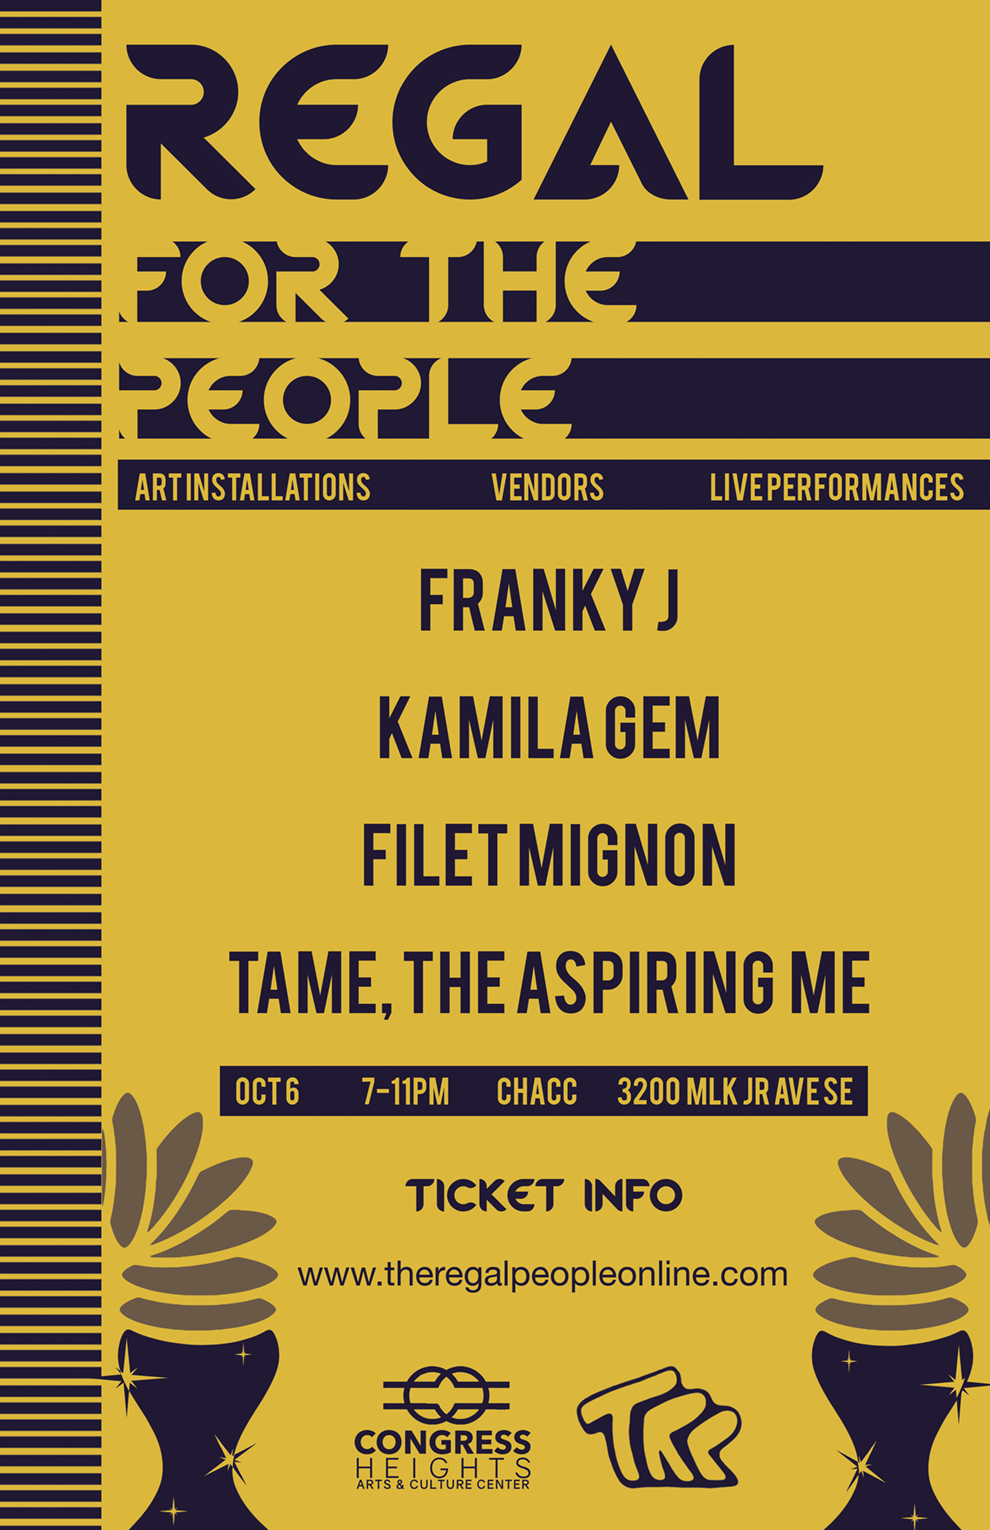 regal for the people flyer - 11x17 - resized.png